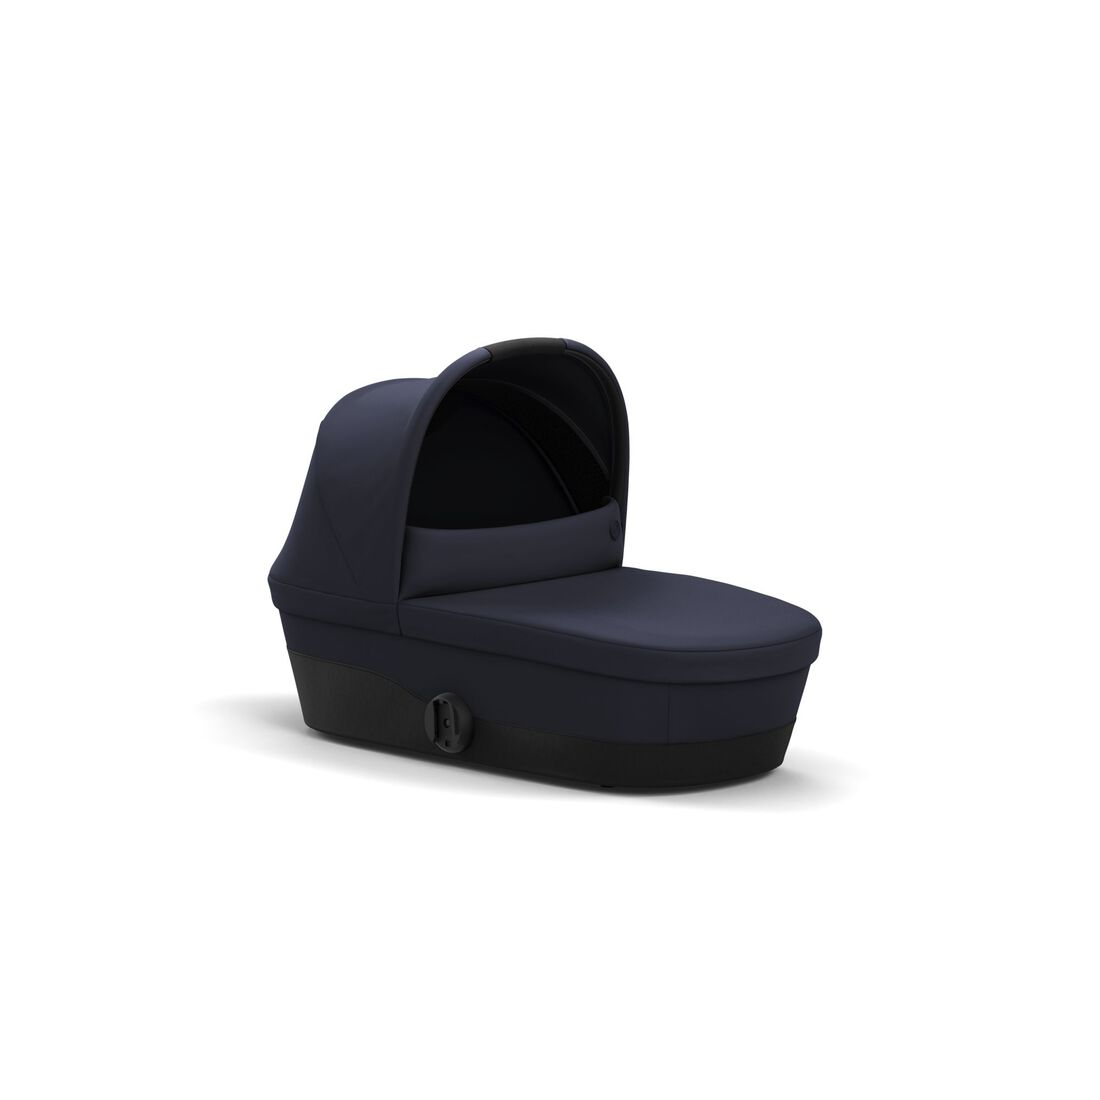 CYBEX Melio Cot - Navy Blue in Navy Blue large image number 1